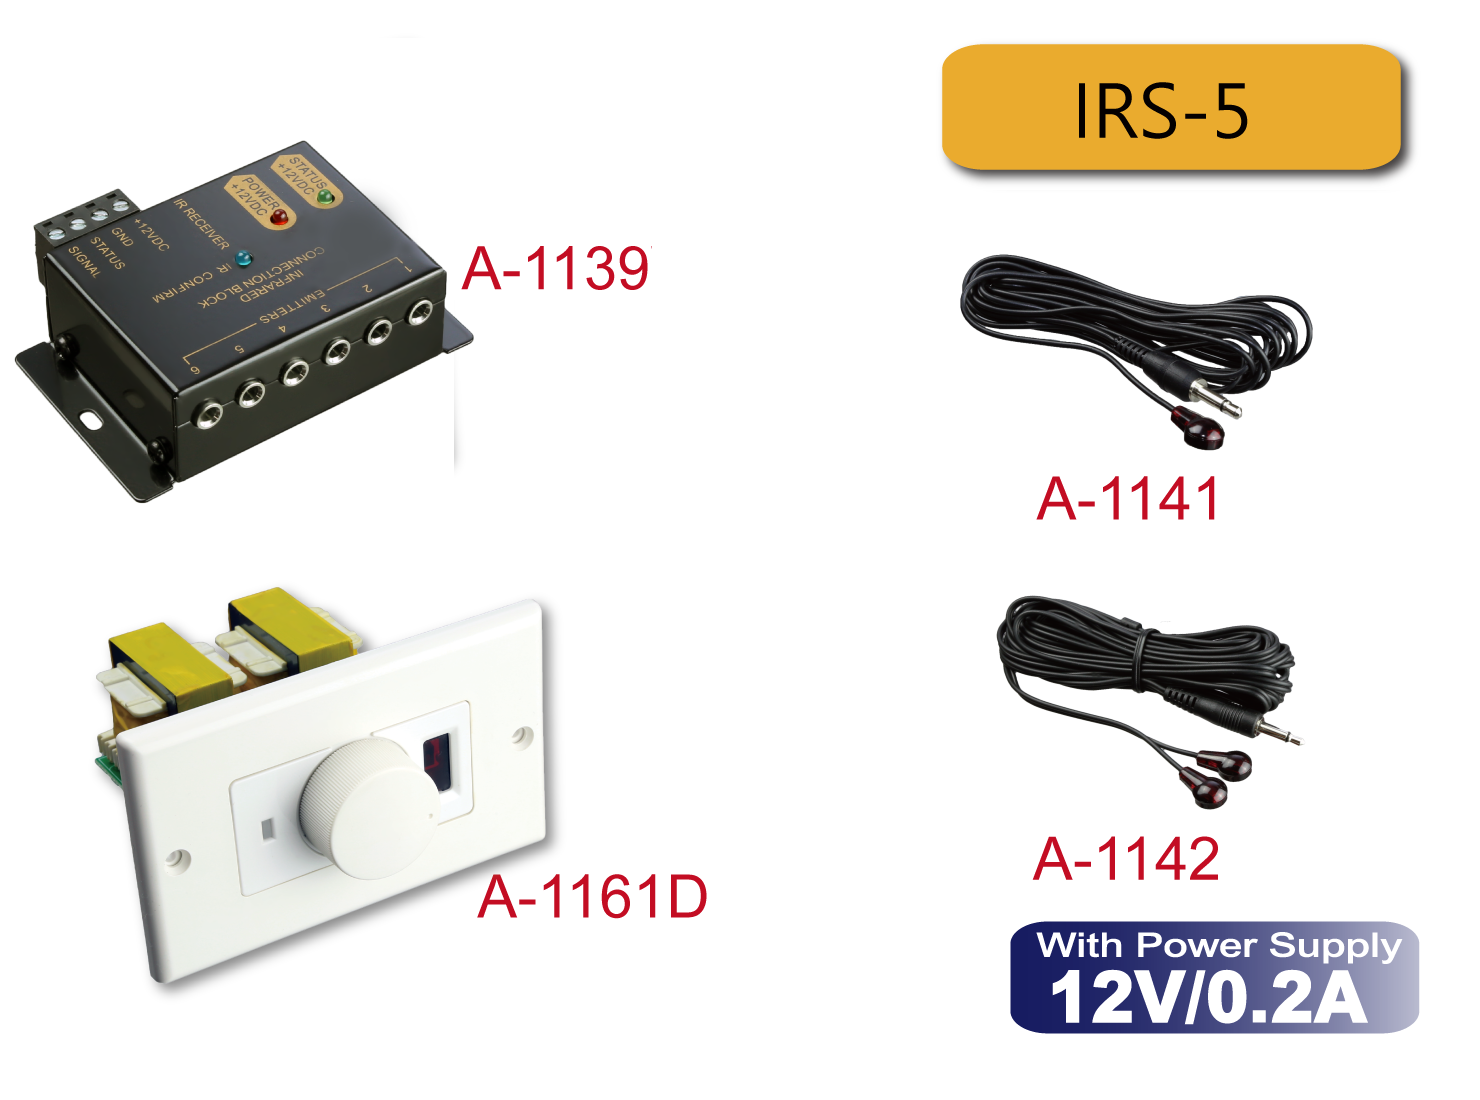 In Wall Volume Control With Ir Kit Irs 5 Ten Tronics Co Ltd